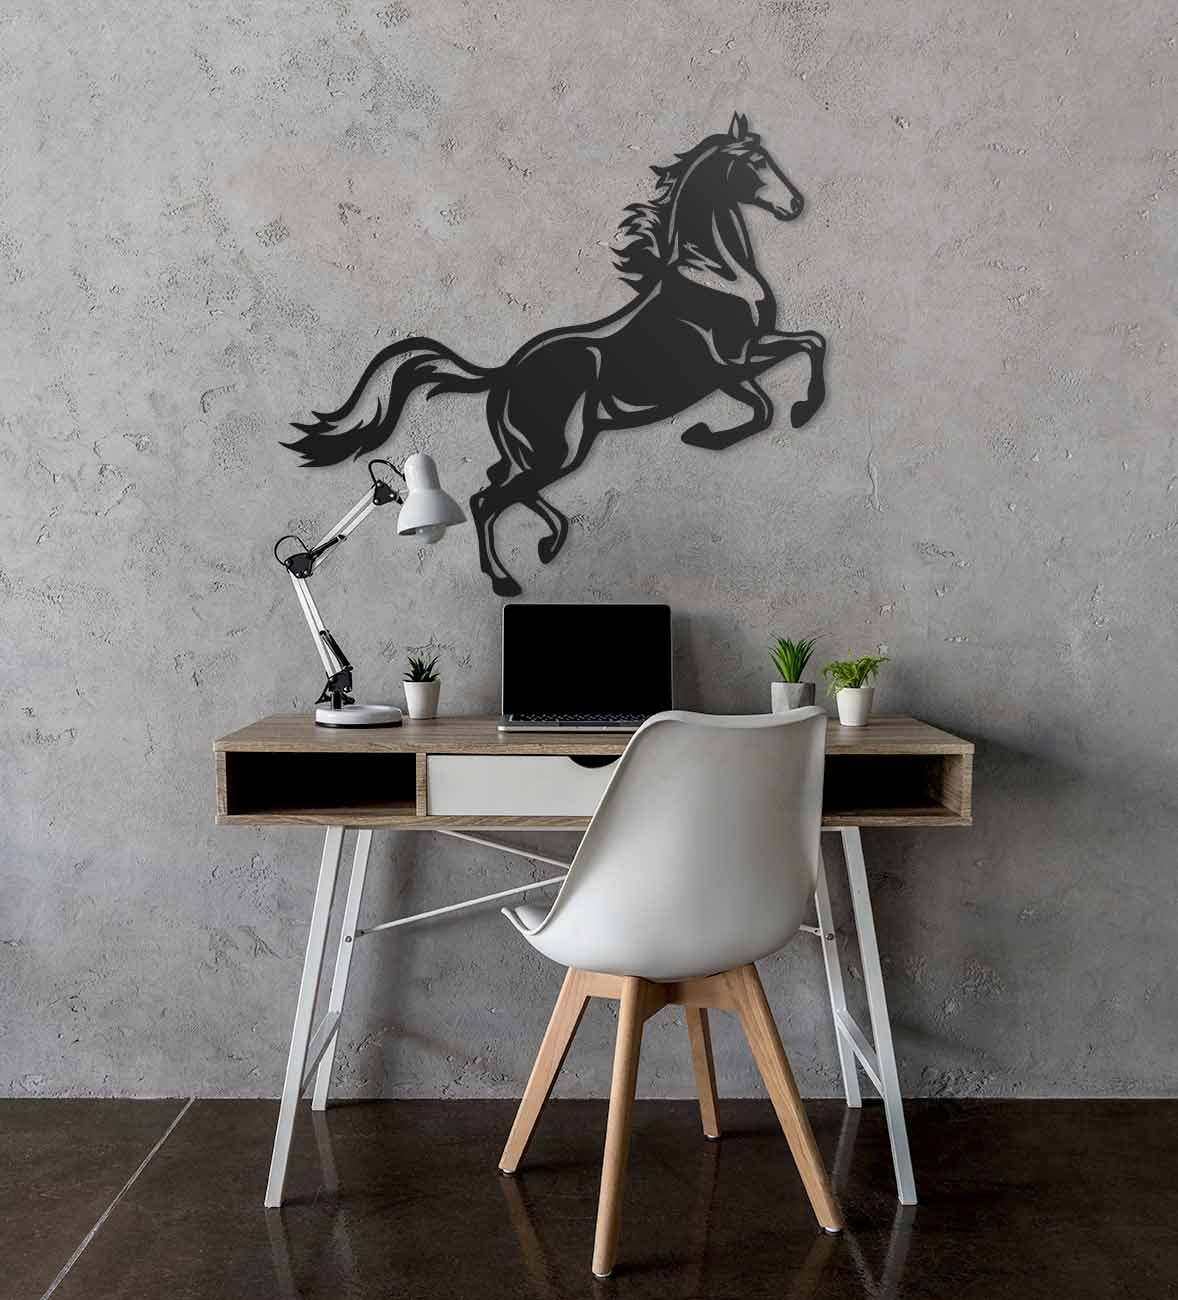 Wooden Wall Horse Prancing Horse Geometric Wall Animals Etsy In 2020 Geometric Wall Home Wall Decor Wood Wall